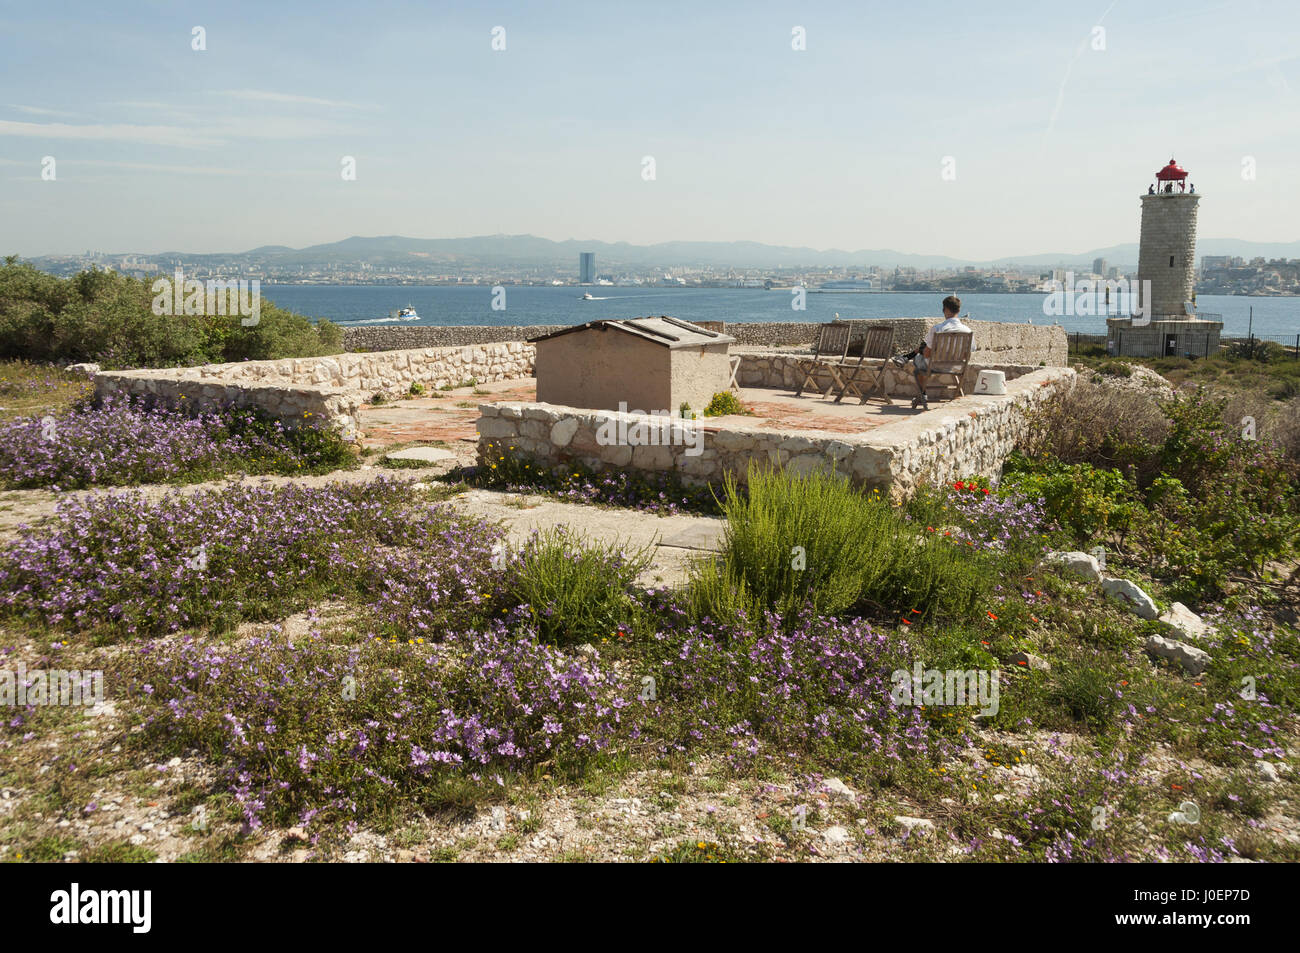 France, Marseille, Chateau d'If, island fortifications - Stock Image